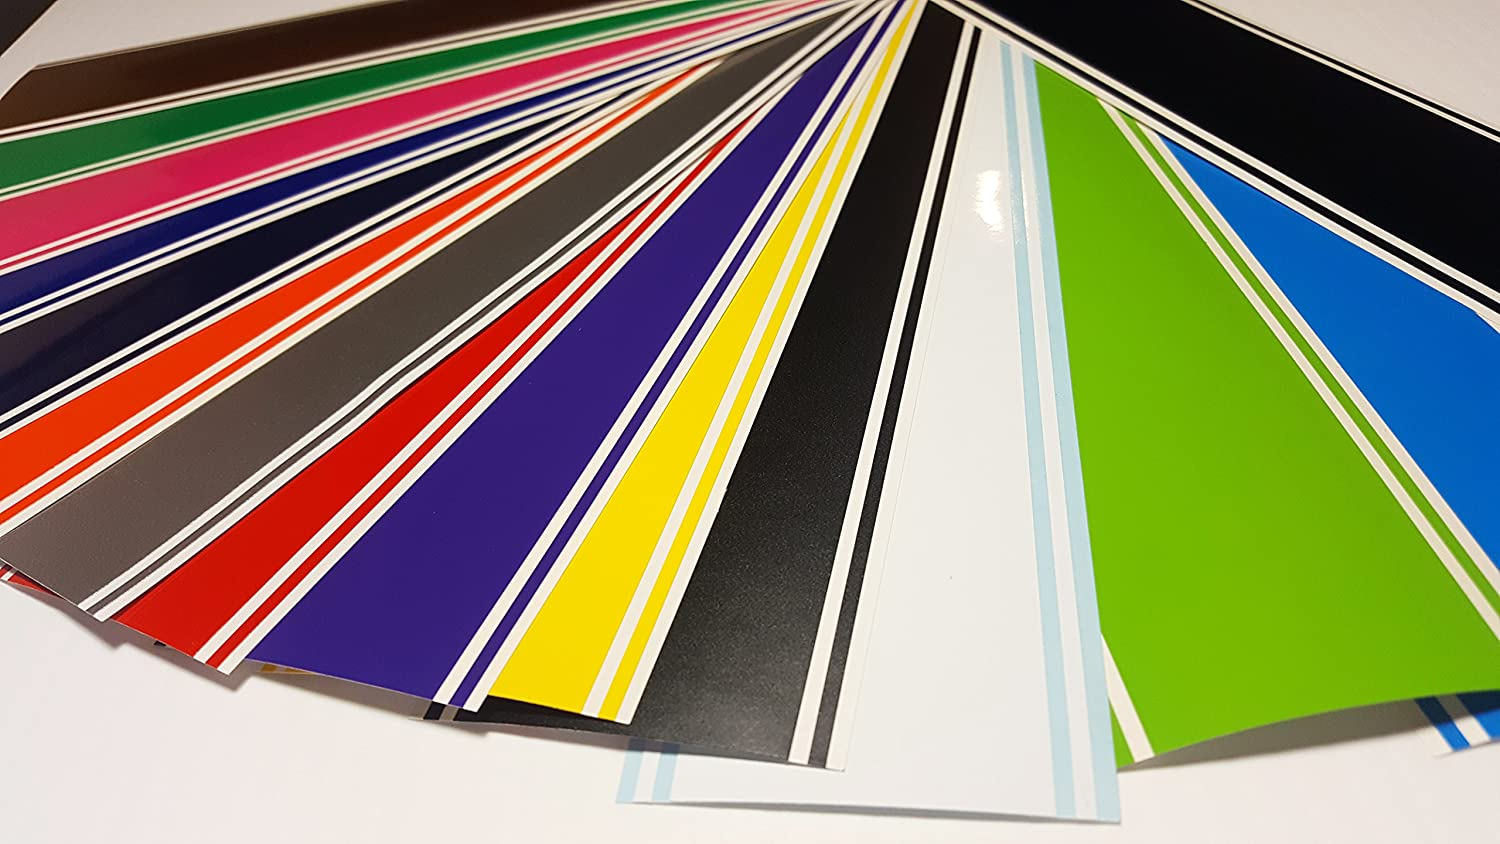 Black 6x72 Vinyl Racing Stripe Decal Oracal 651 by A1A Sales